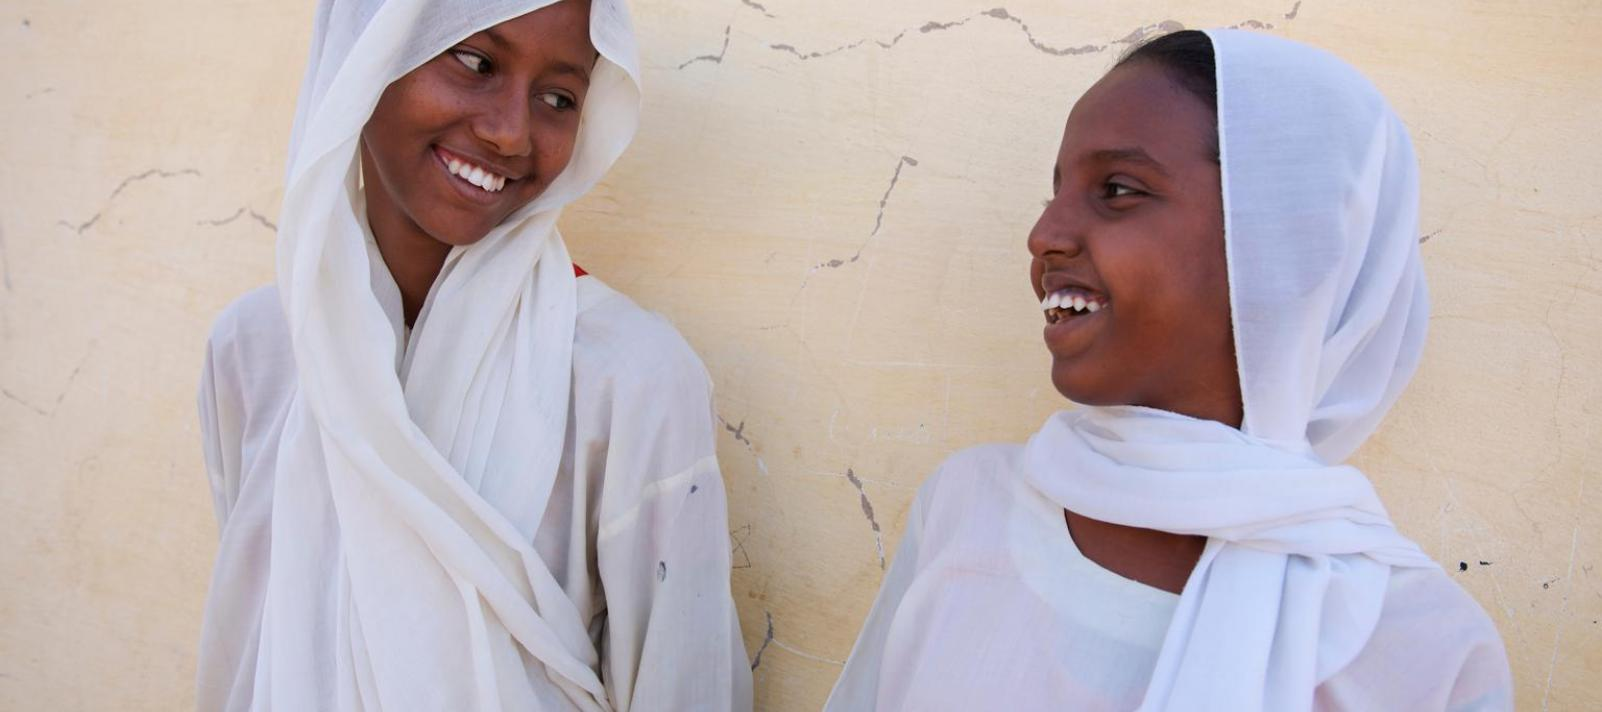 With smiles on the faces, young girls talk to each other standing outside a Child Friendly School called...